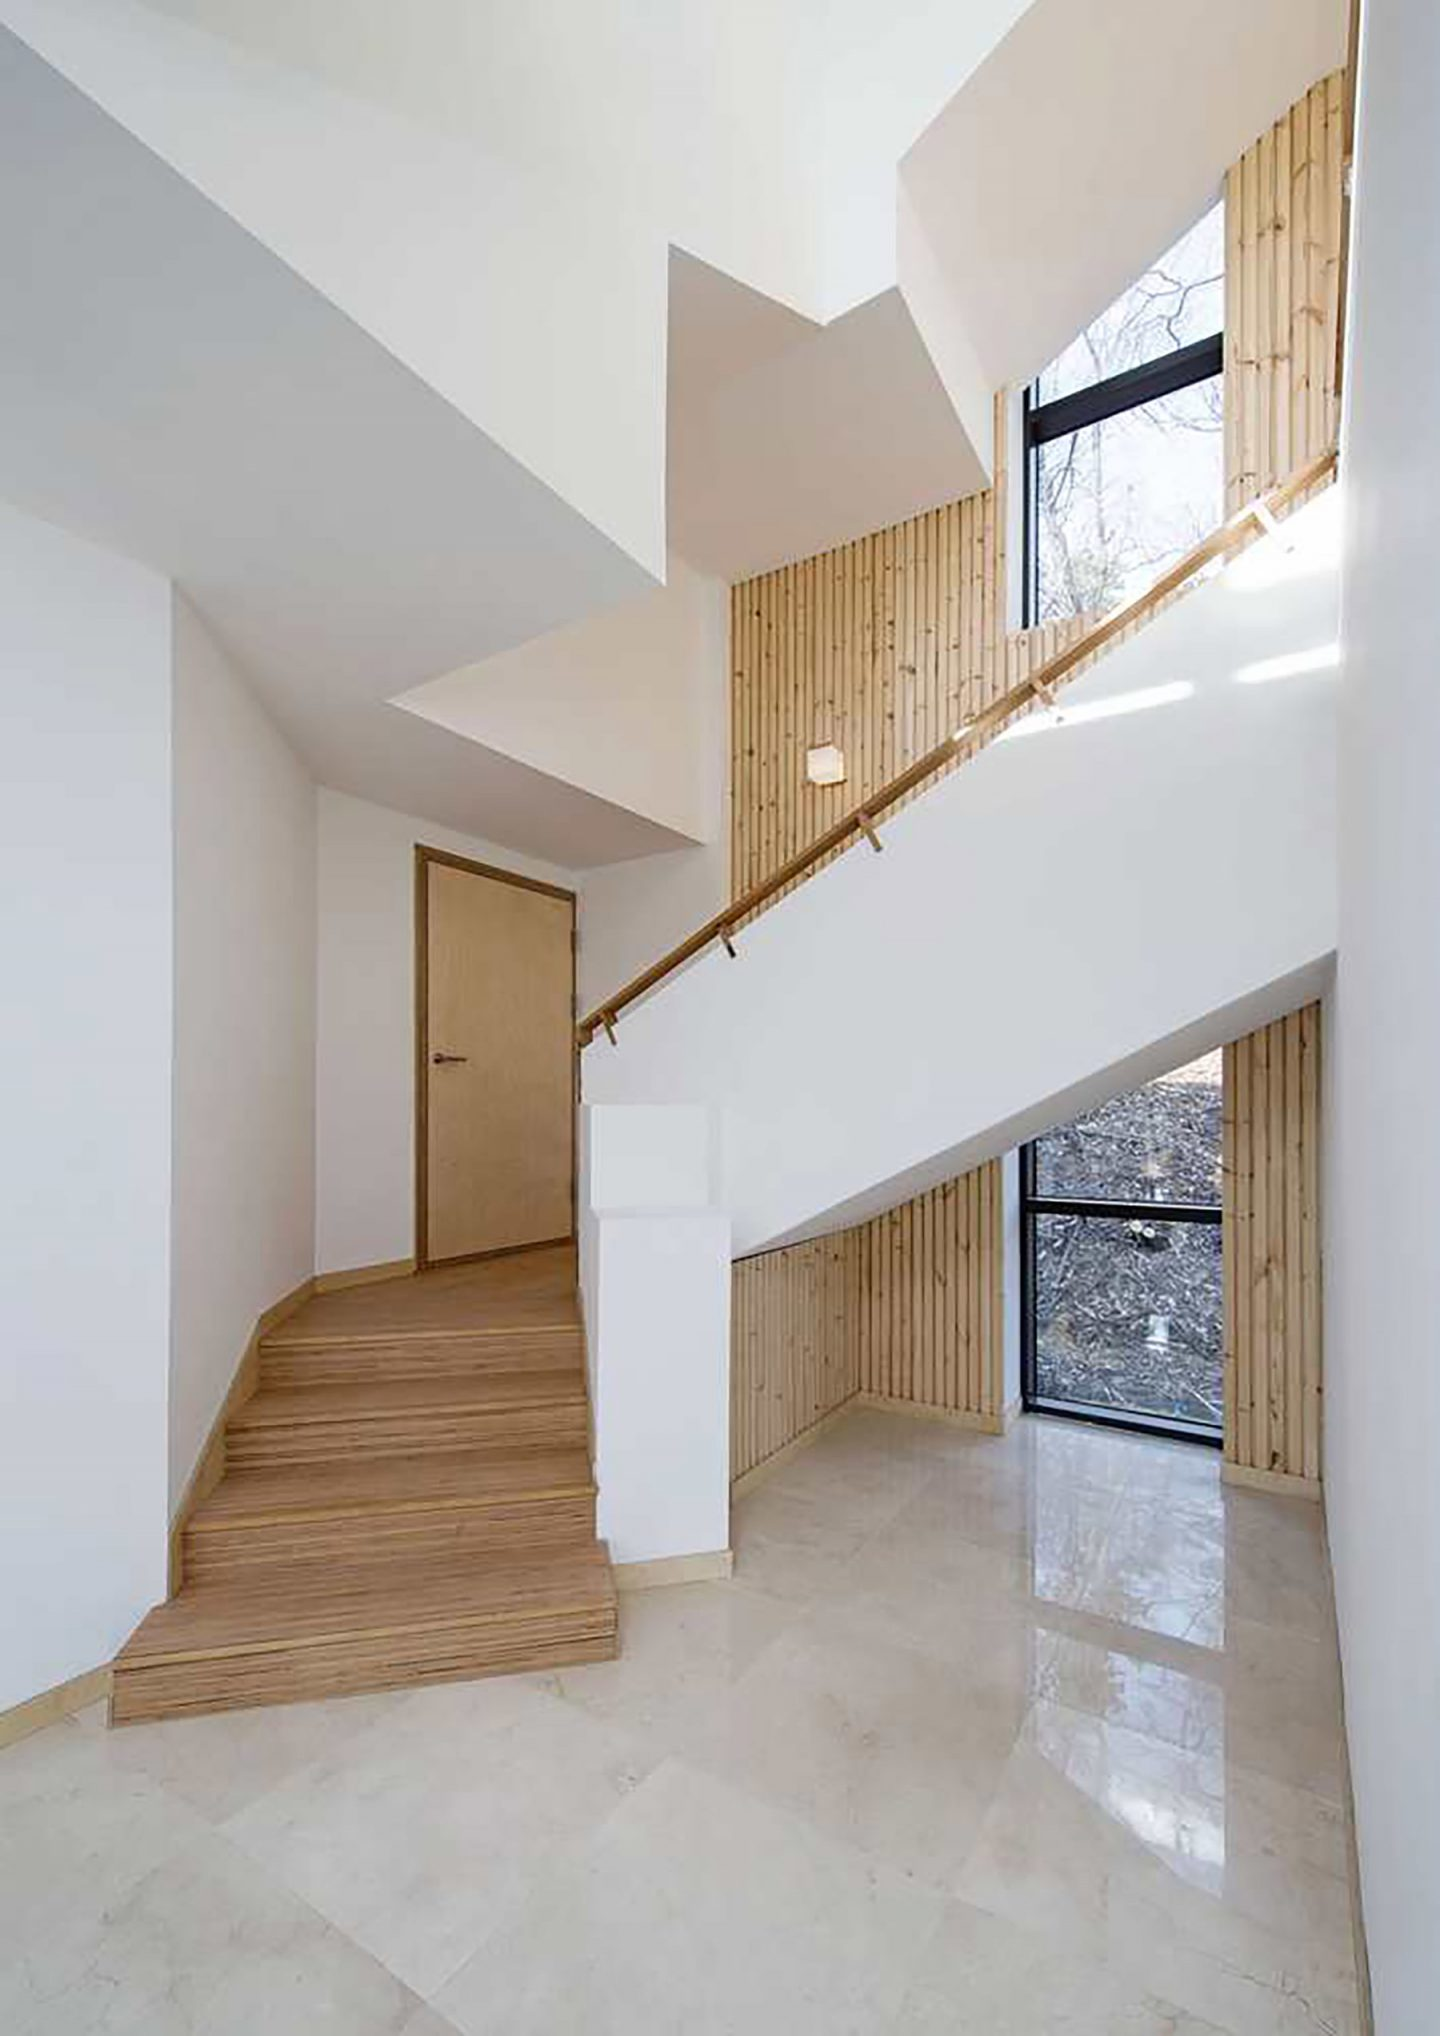 iGNANT-Design-ADesign-Chang-Kyu-Lee-A-House-001